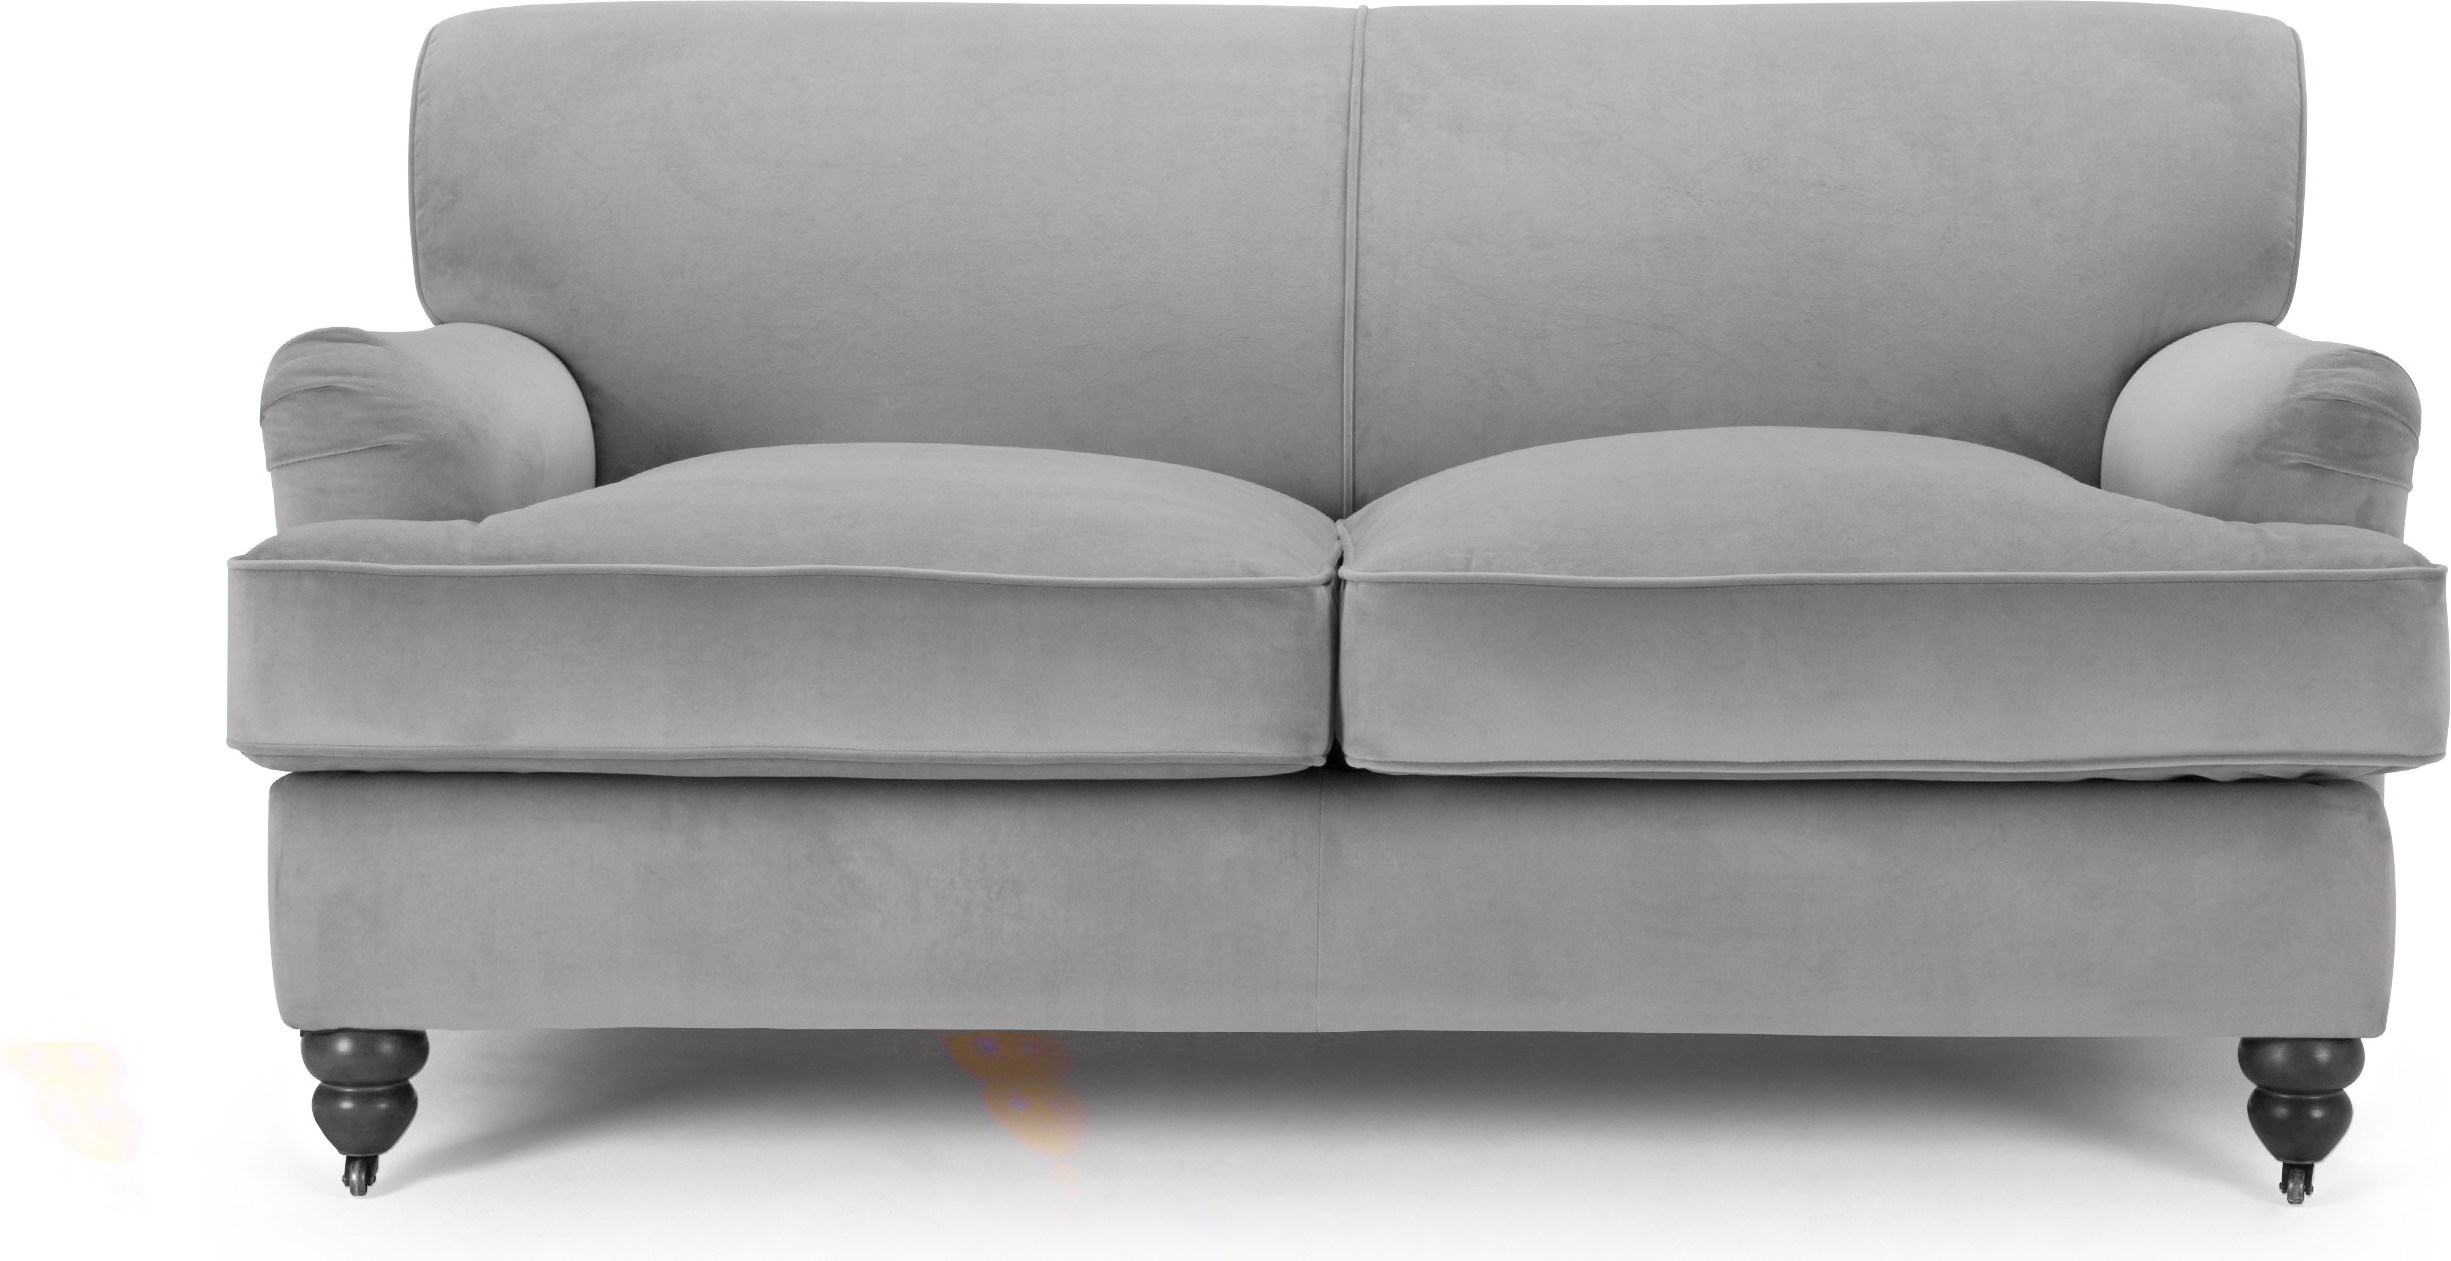 Orson 2 Seater Sofa, Granite Velvet